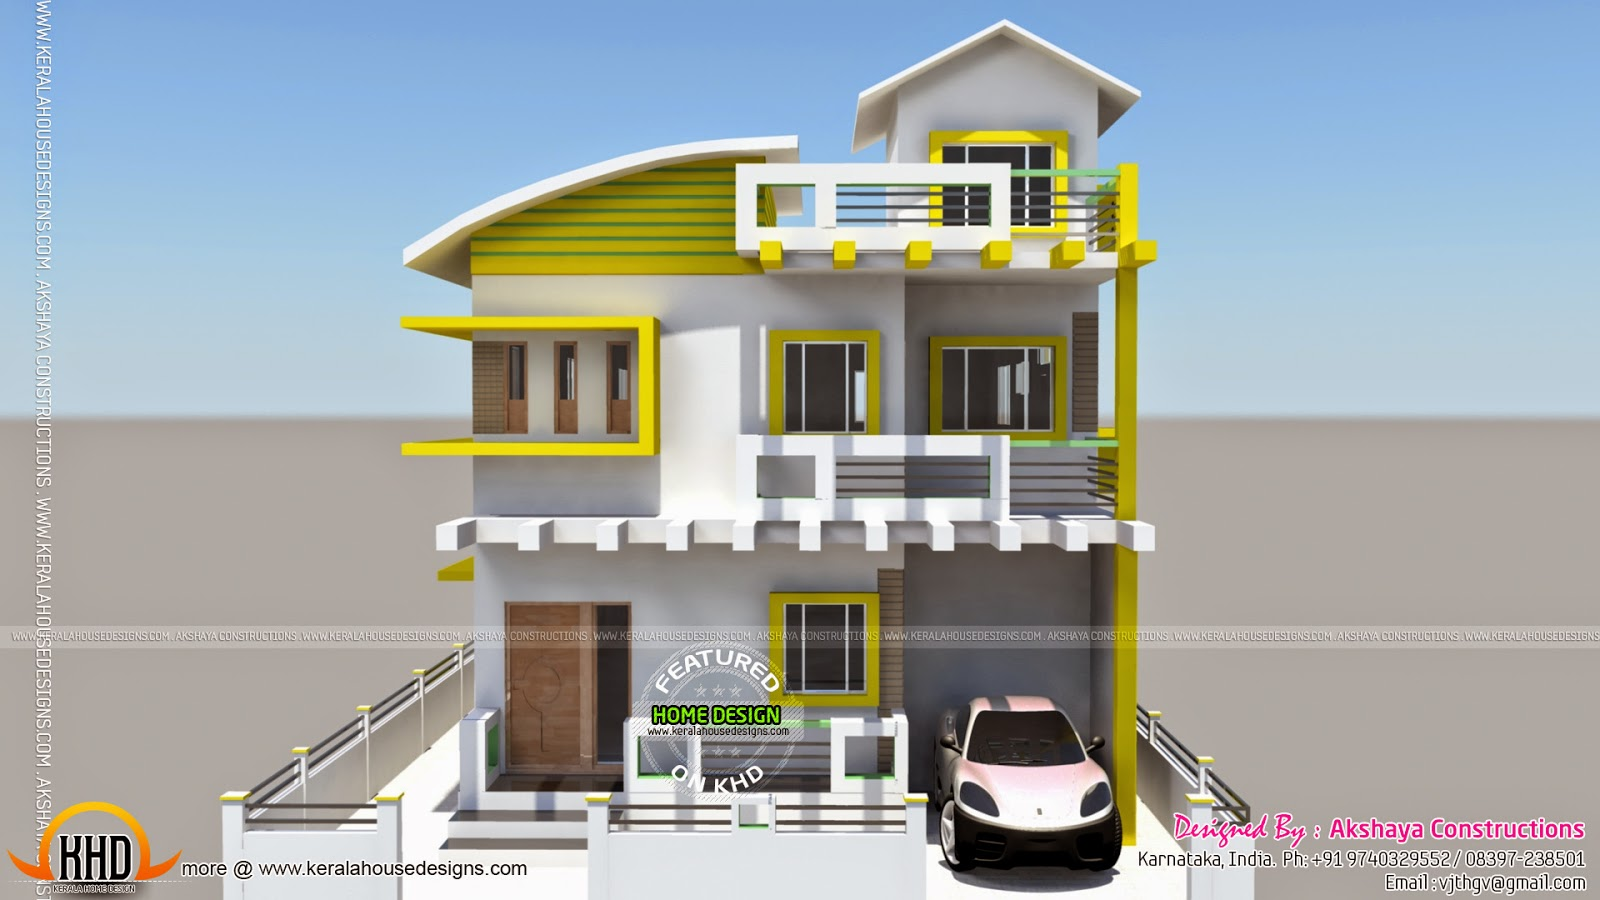 Karnataka home design kerala home design and floor plans for Home design images